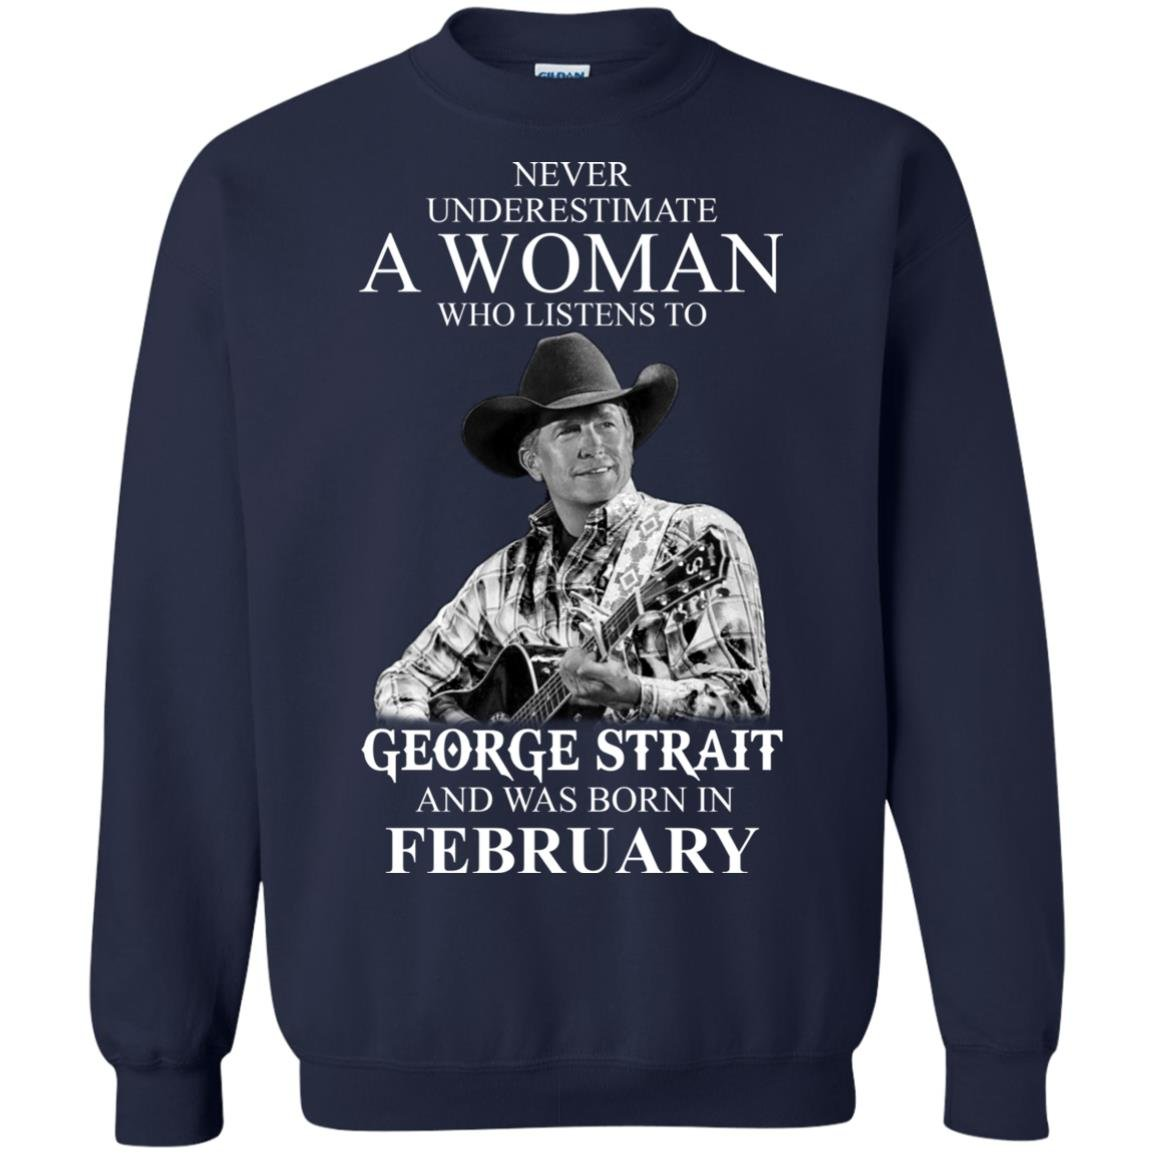 image 453 - Never Underestimate A Woman Who Listens To George Strait And Was Born In February shirt